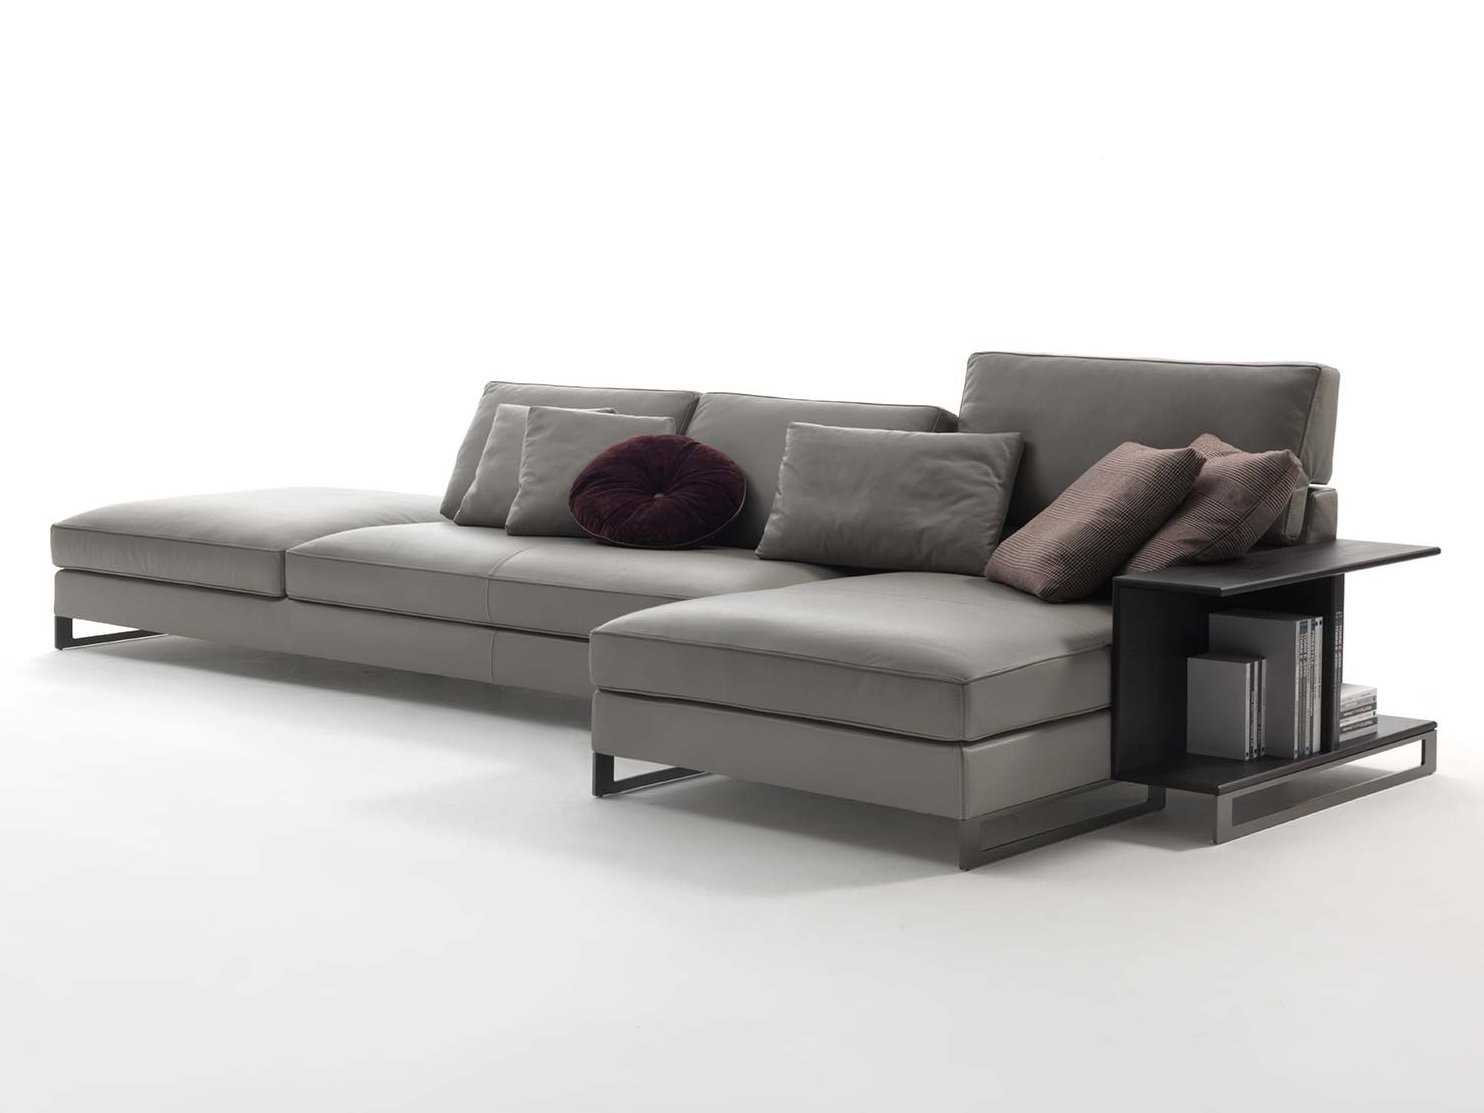 Davis book leather sofa by frigerio poltrone e divani for Sofa poltrone e divani